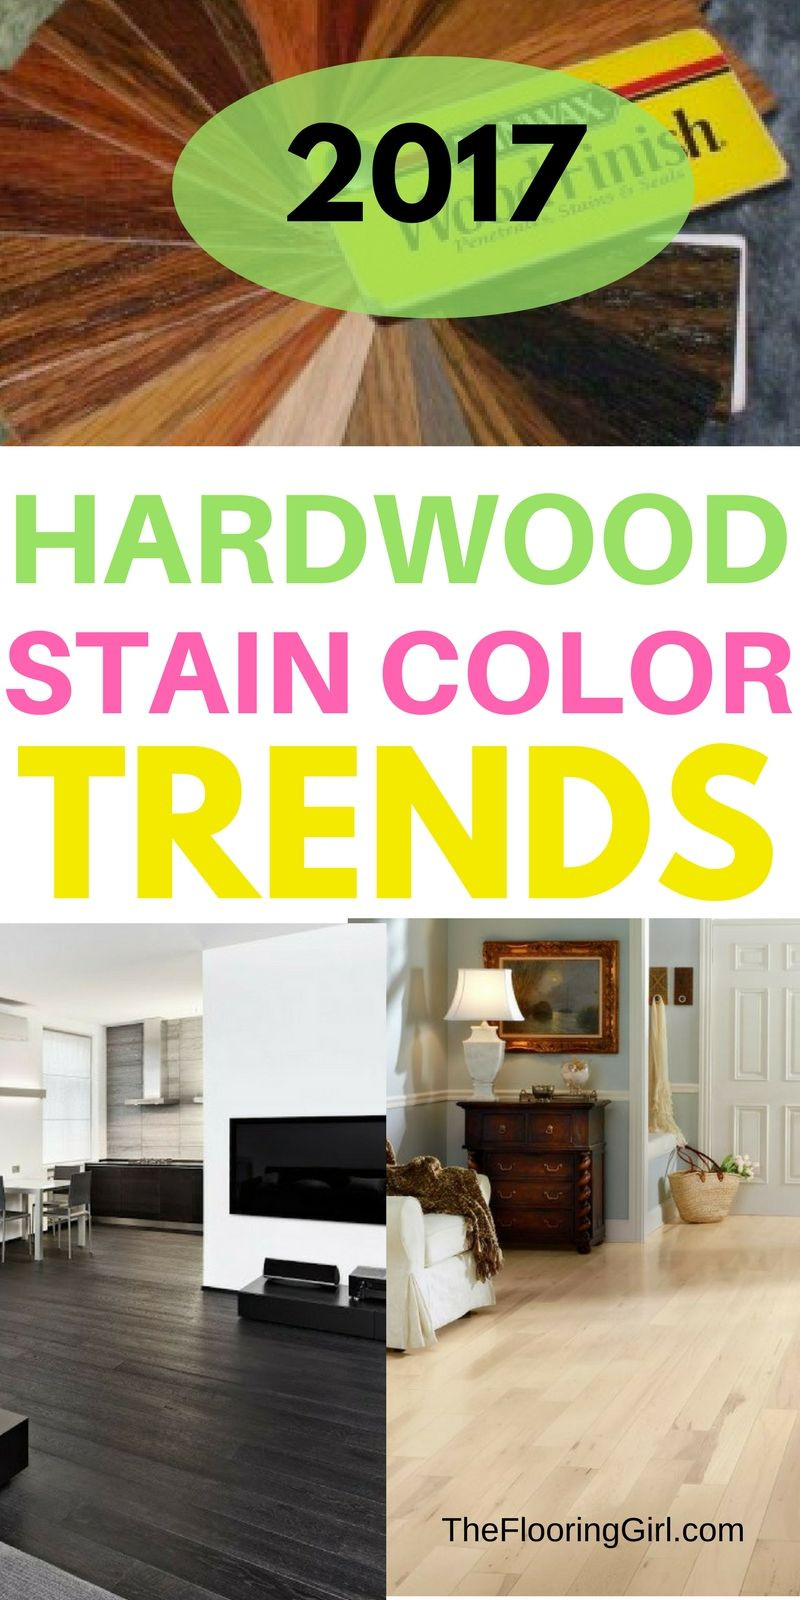 hardwood flooring sydney prices of hardwood flooring stain color trends 2018 more from the flooring for hardwood flooring stain color trends for 2017 hardwood colors that are in style theflooringgirl com